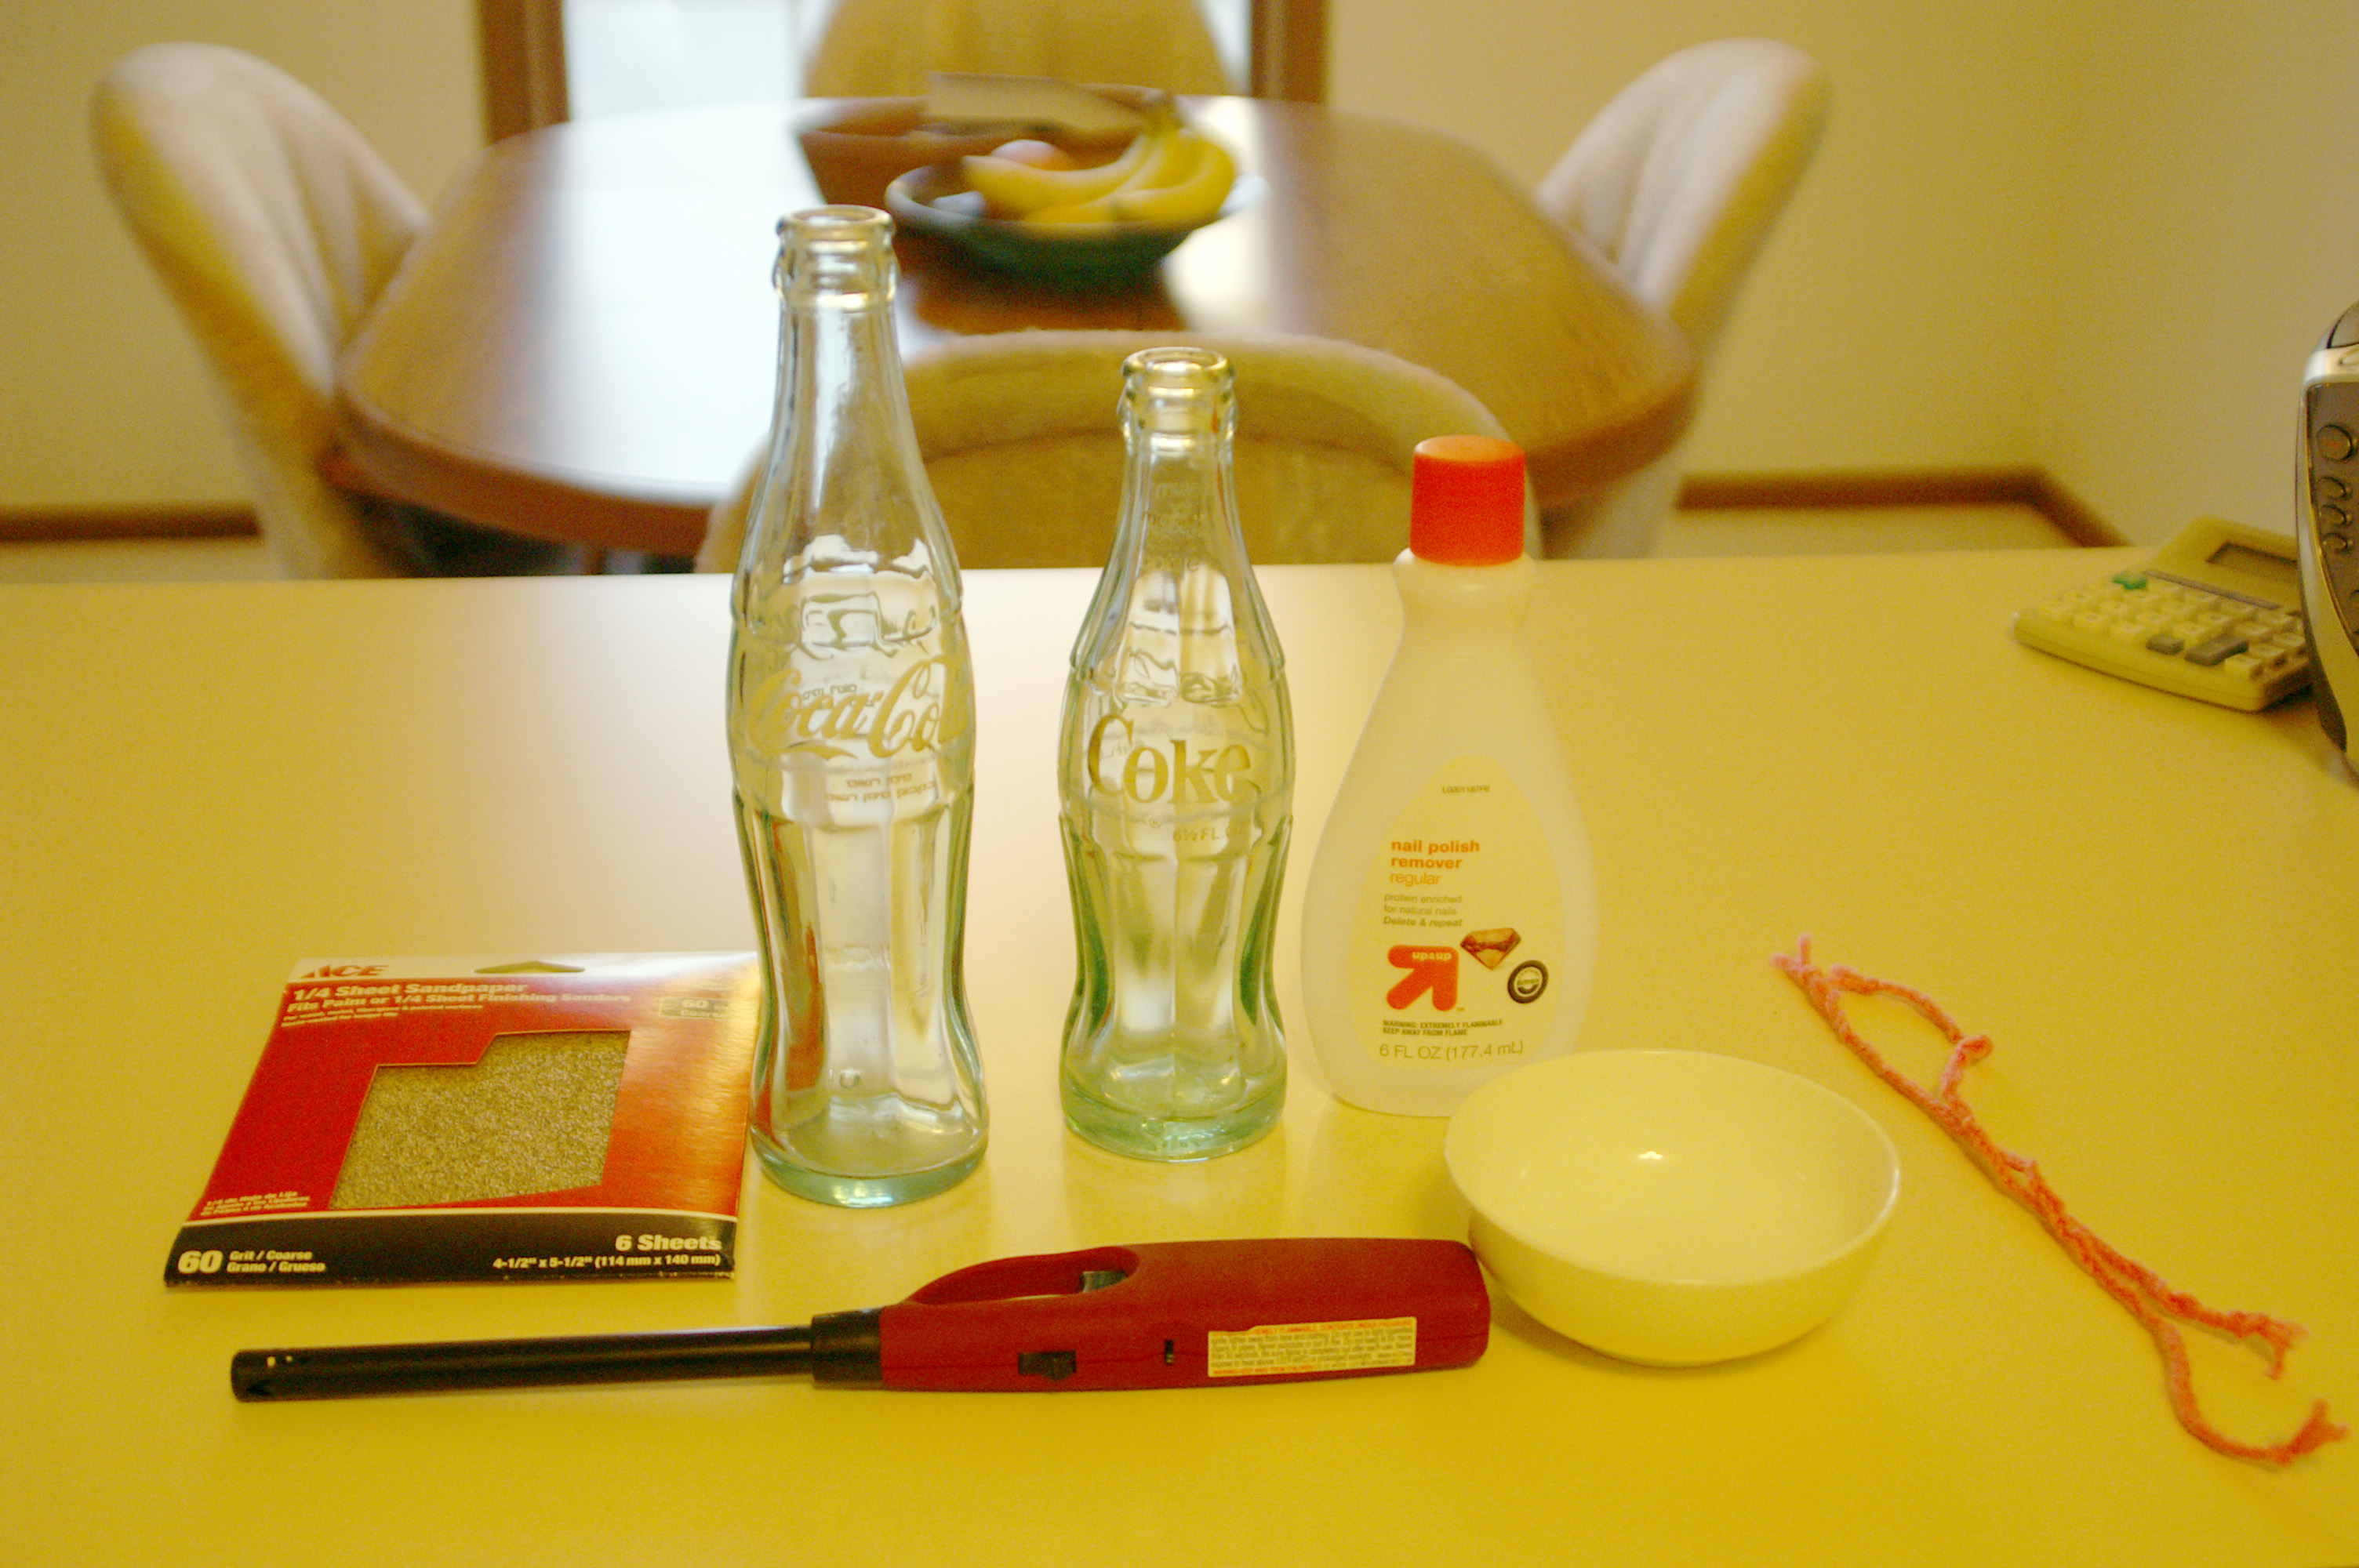 Cheers diy glass bottle cutting millieonherworld for How to cut yourself with glass